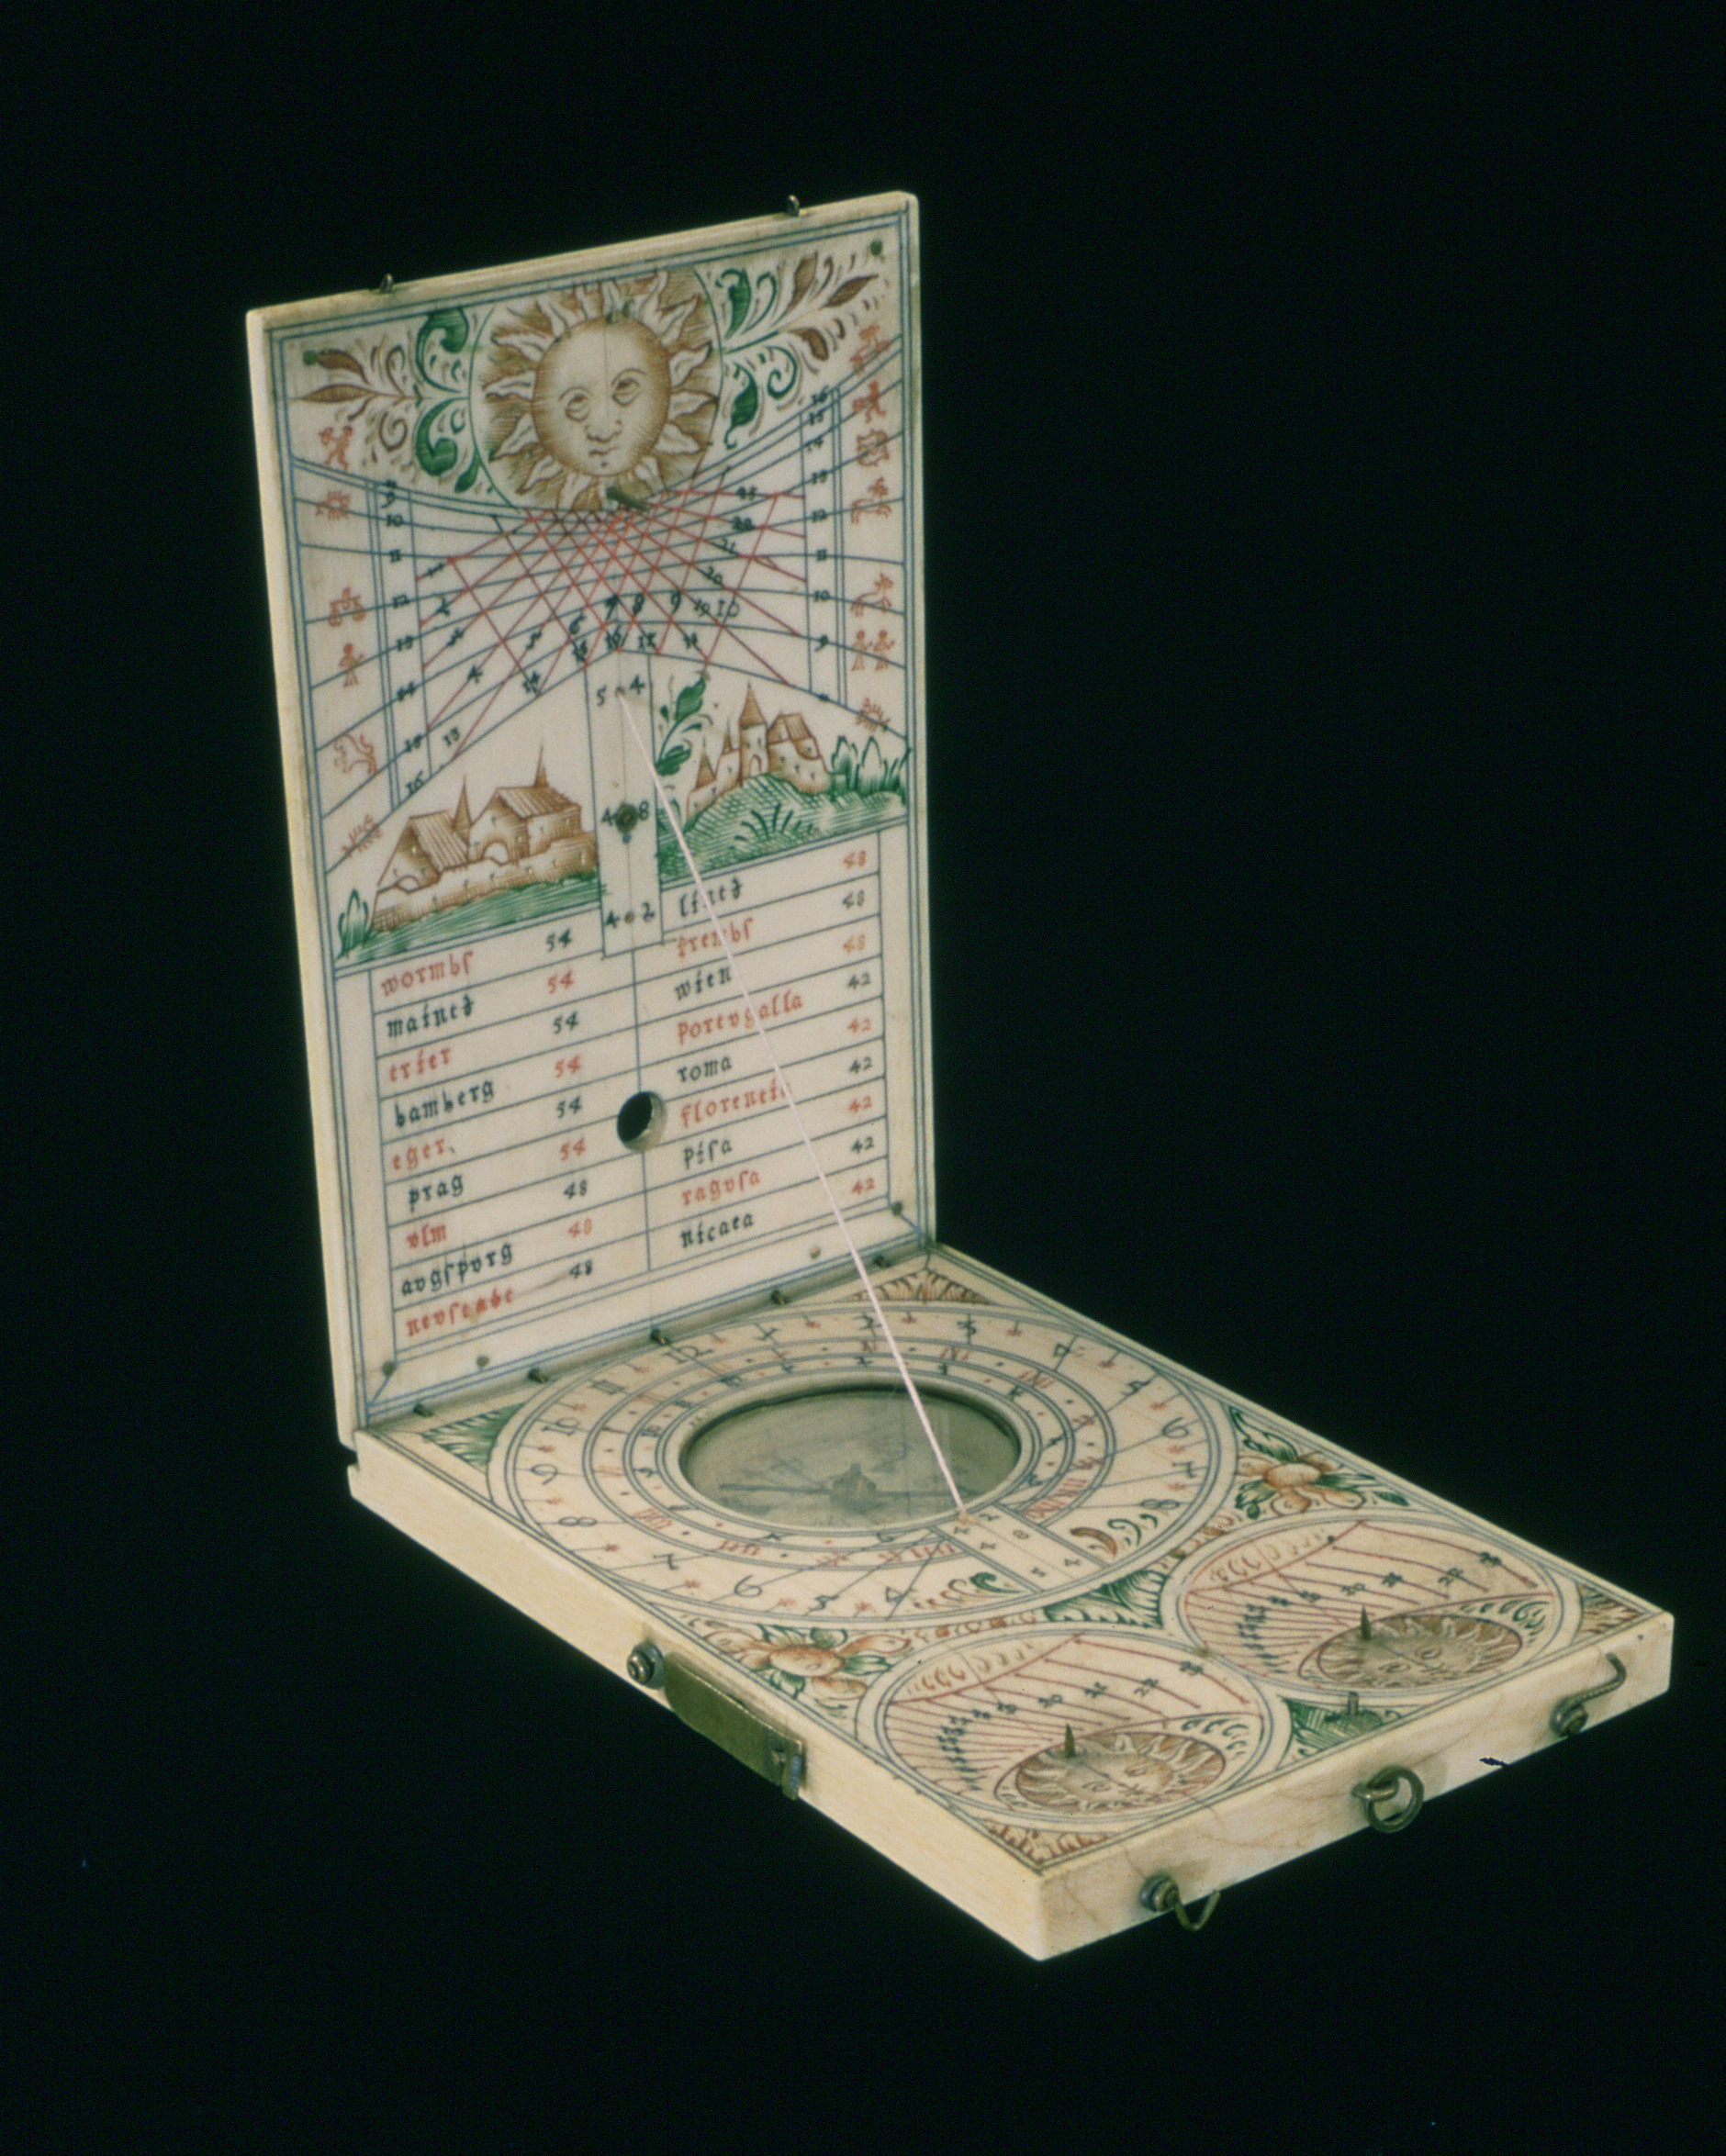 17th century Nuremberg Ivory Diptych sundial showing latitudes for different cities, Italian hours, Babylonian hours, and the number of hours of daylight and darkness (inventory no. 7899,  The Collection of Historical Scientific Instruments, Harvard University ).